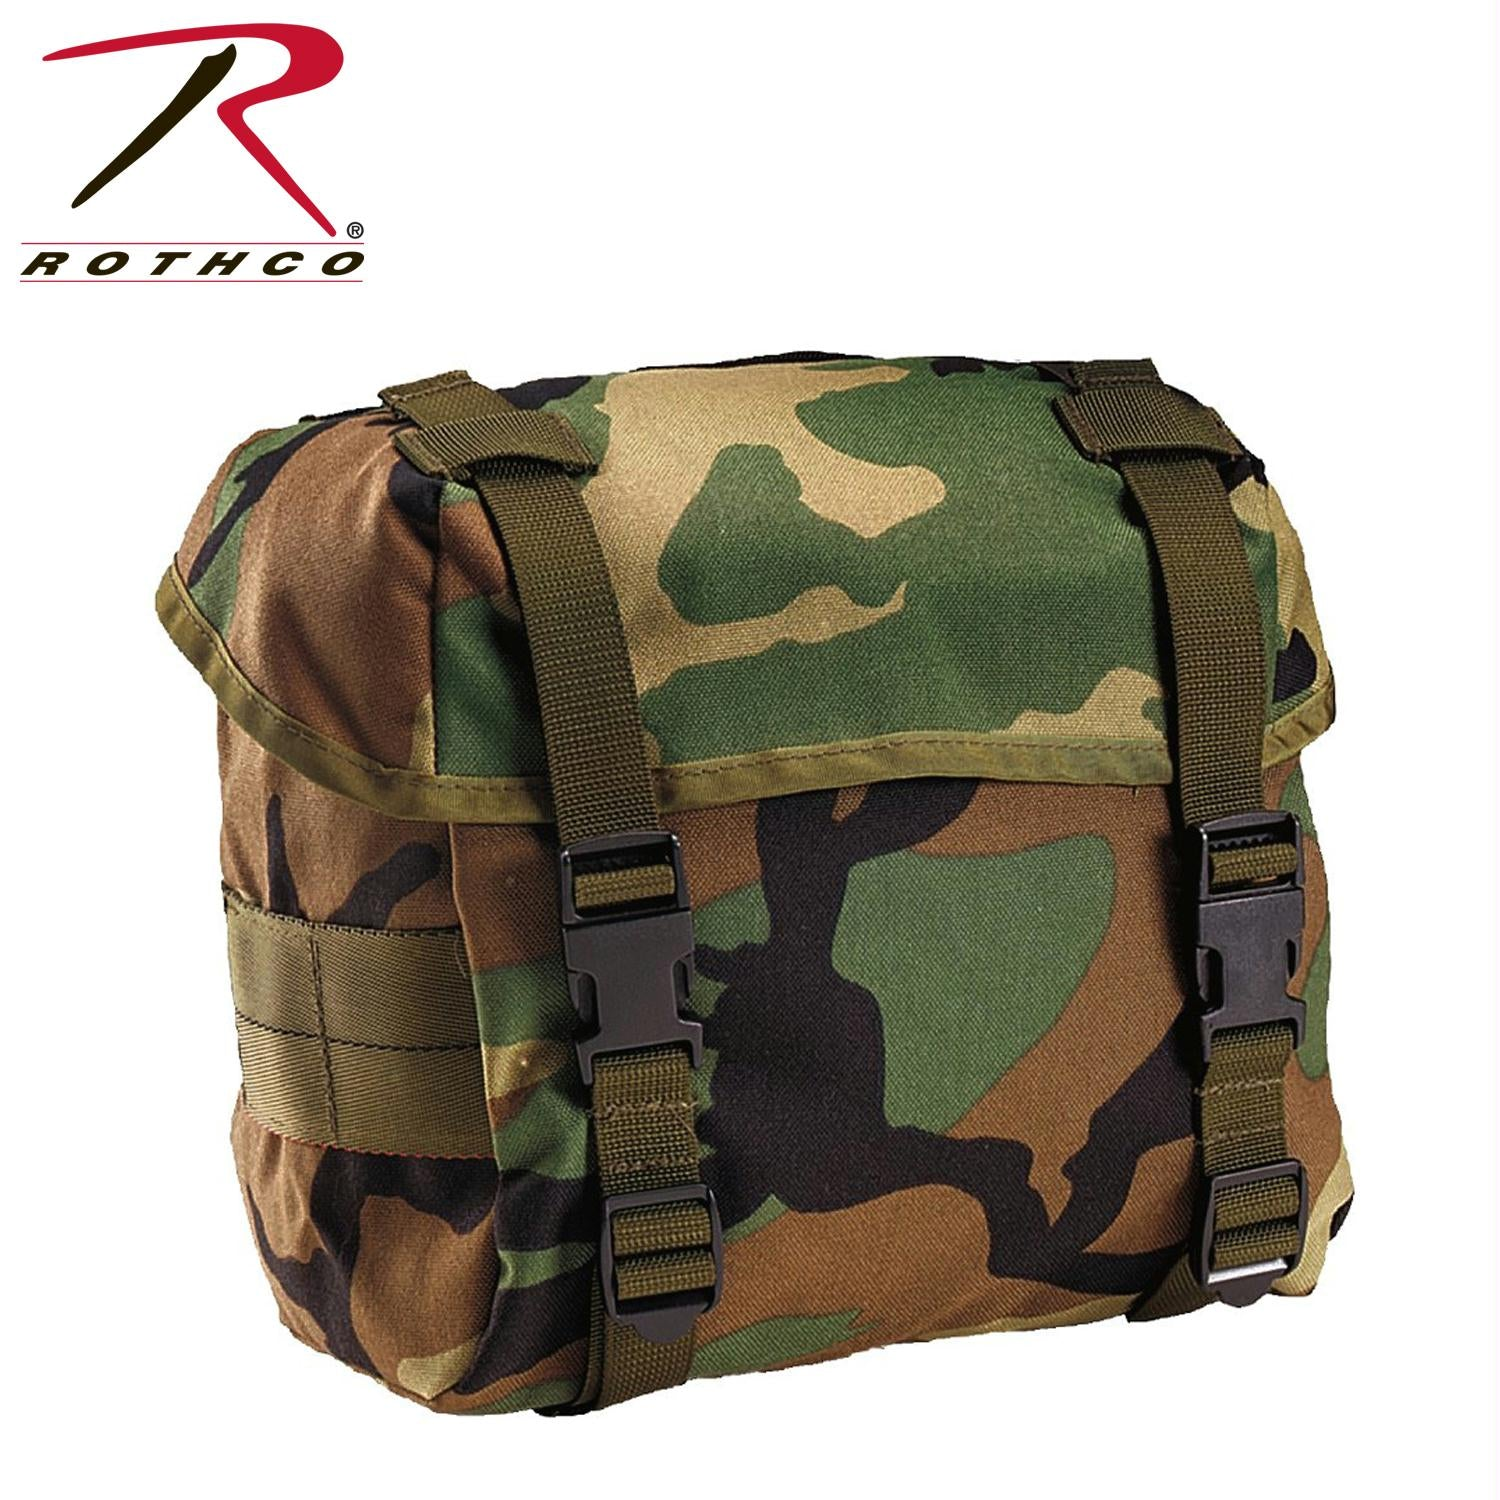 Rothco G.I. Type Enhanced Butt Packs - Woodland Camo